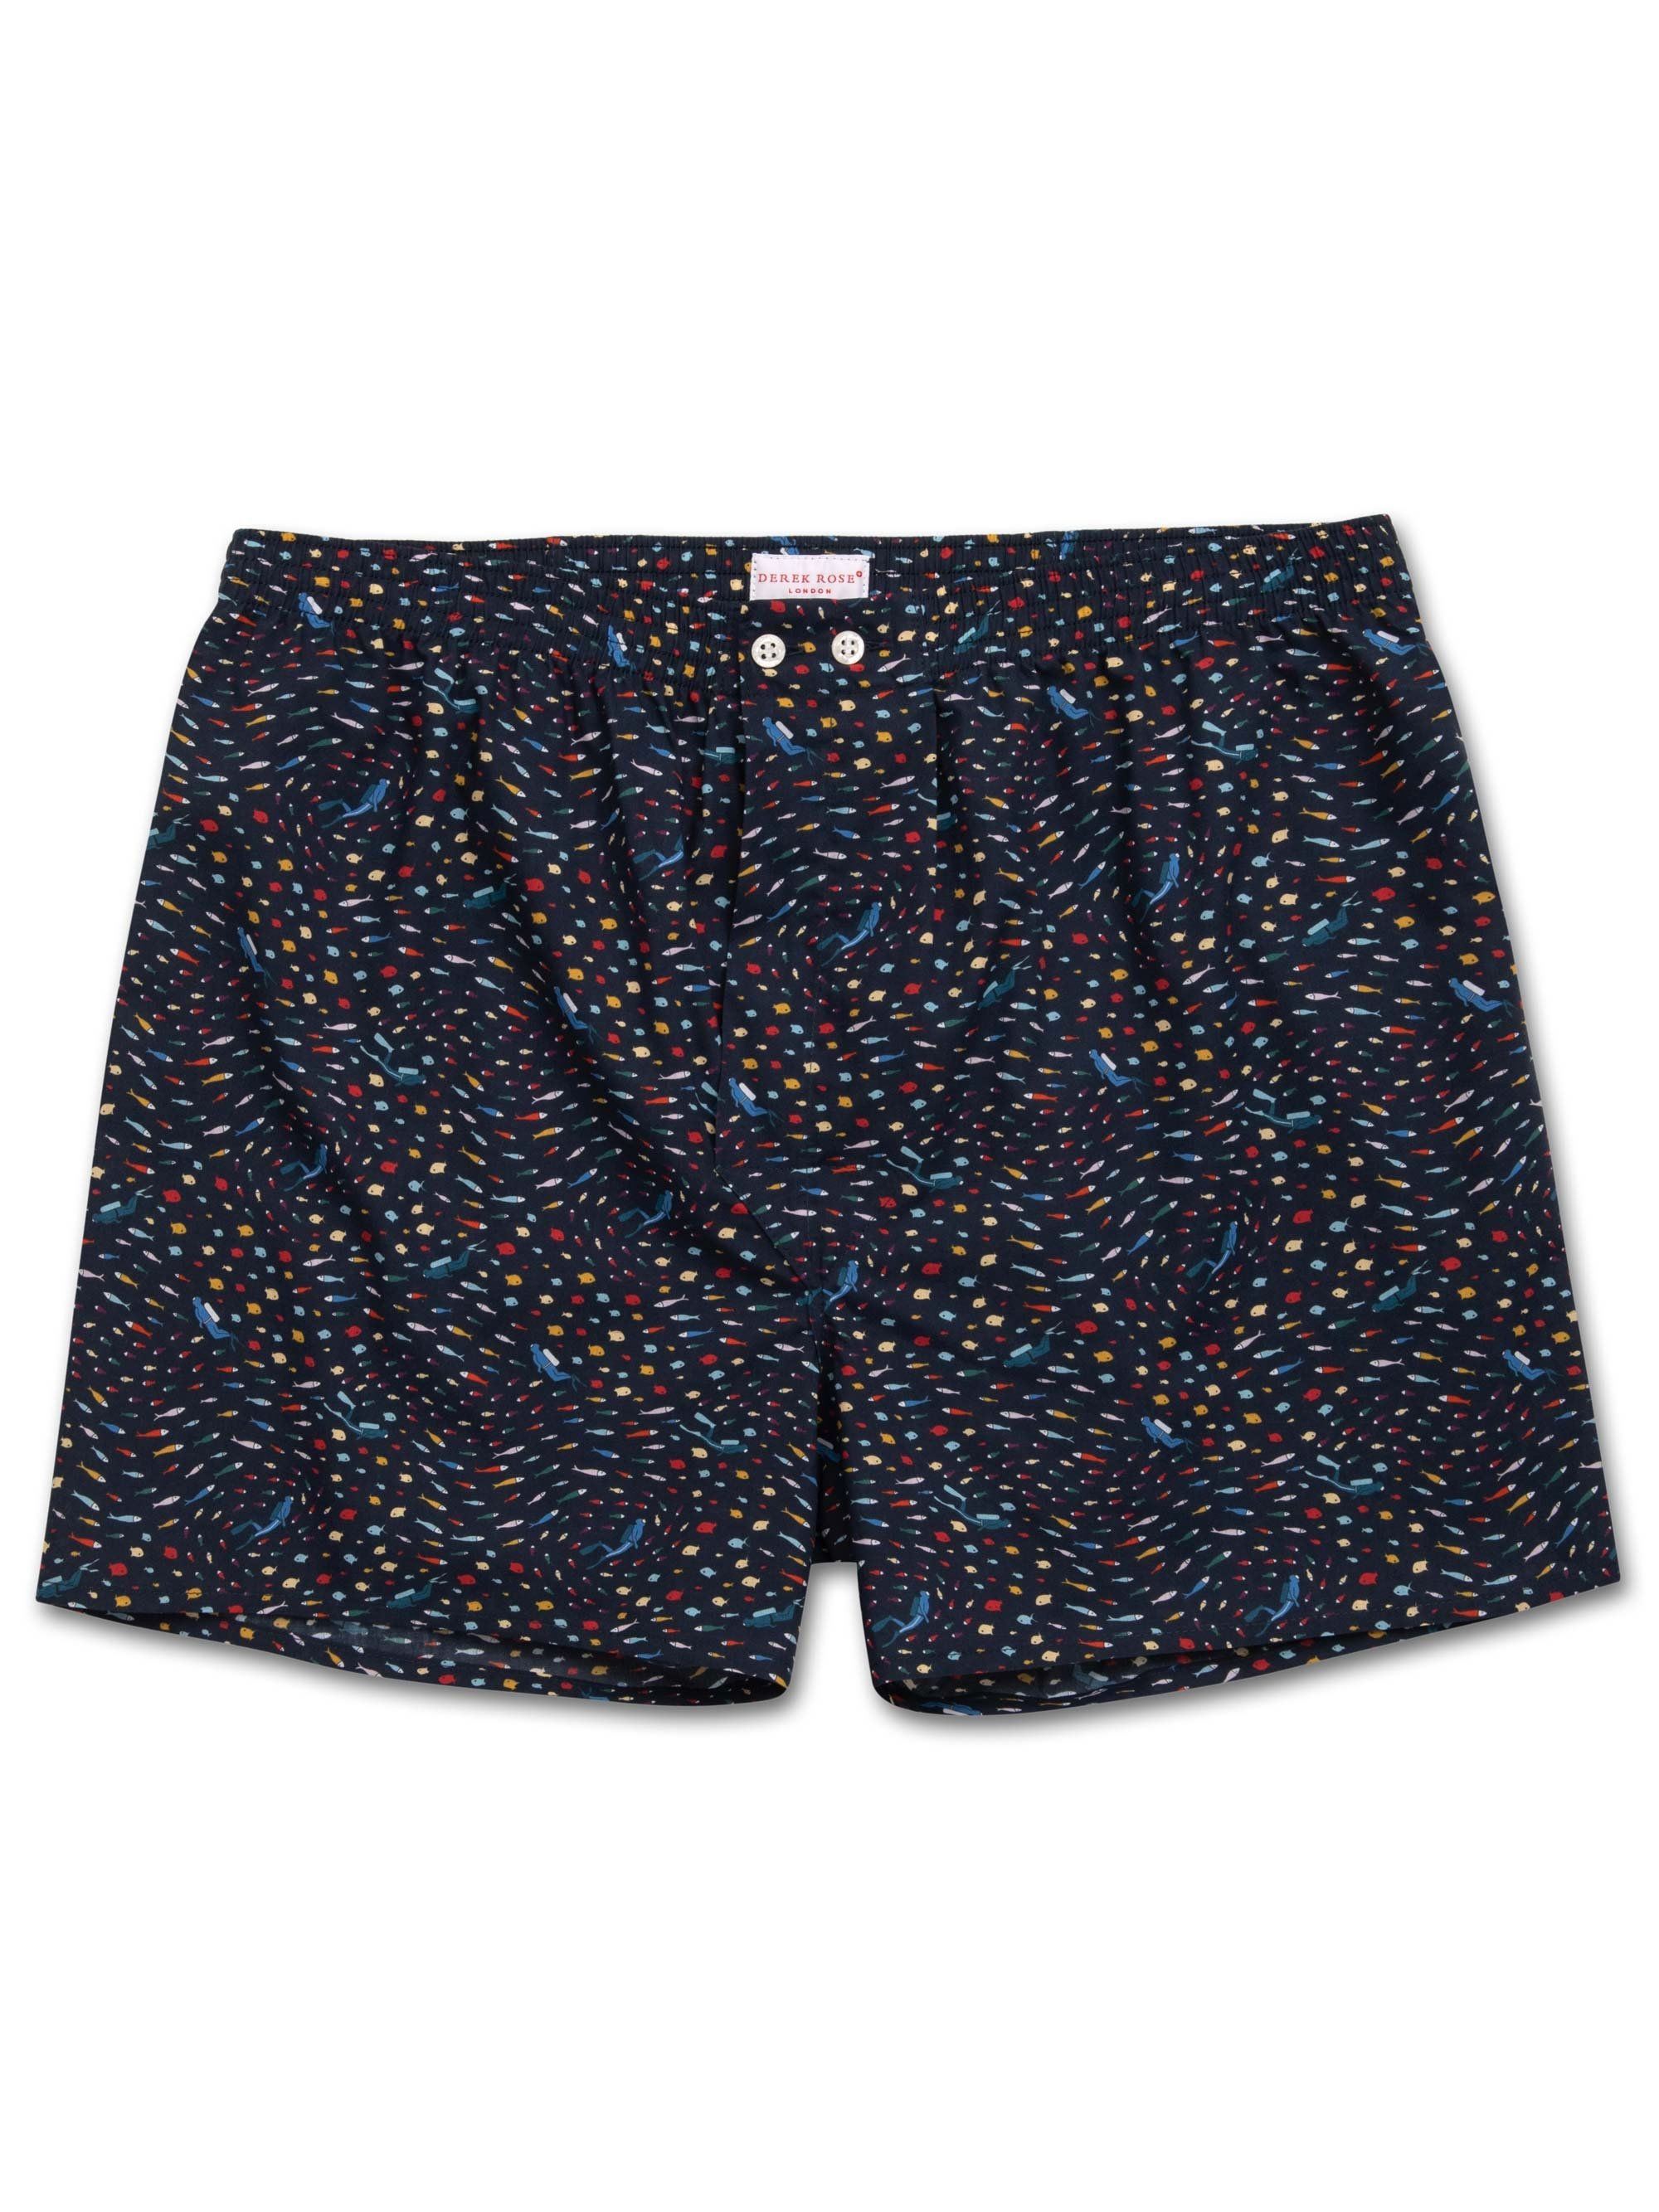 Men's Classic Fit Boxer Shorts Ledbury 29 Cotton Batiste Navy